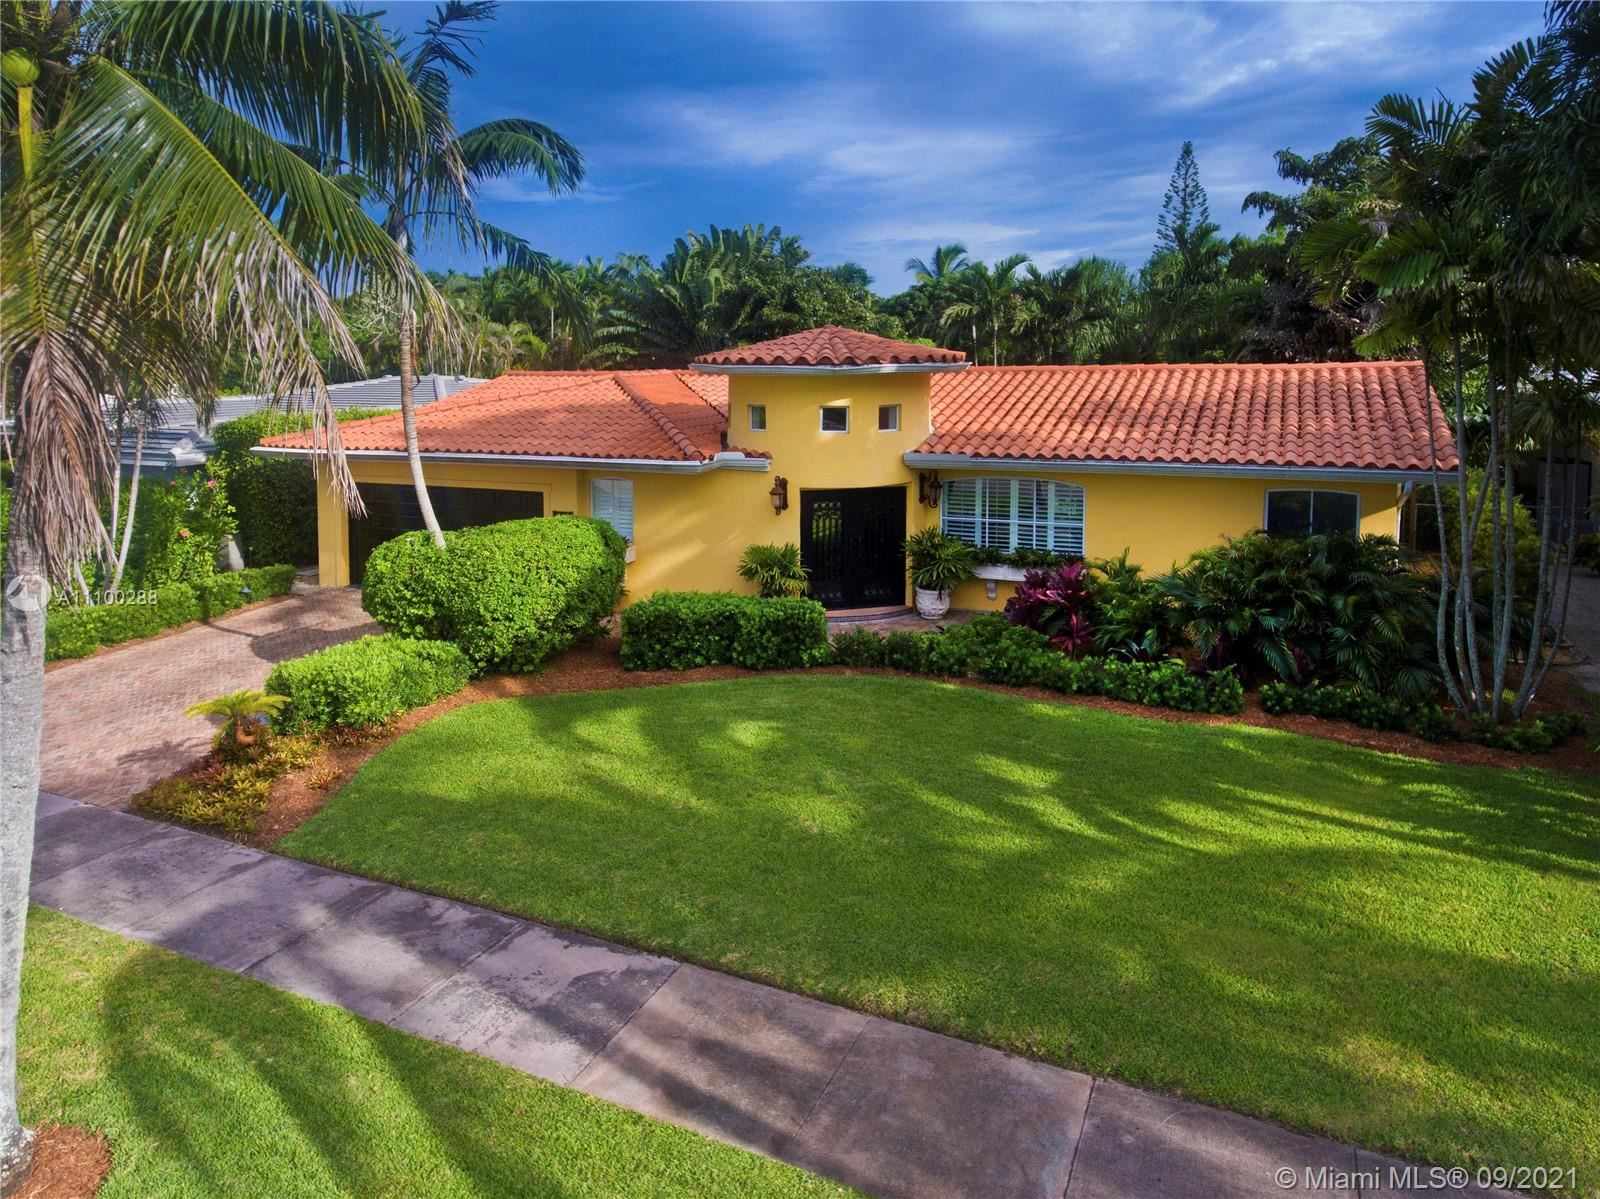 Photo of 422 Luenga Ave, Coral Gables, FL 33146 (MLS # A11100288)